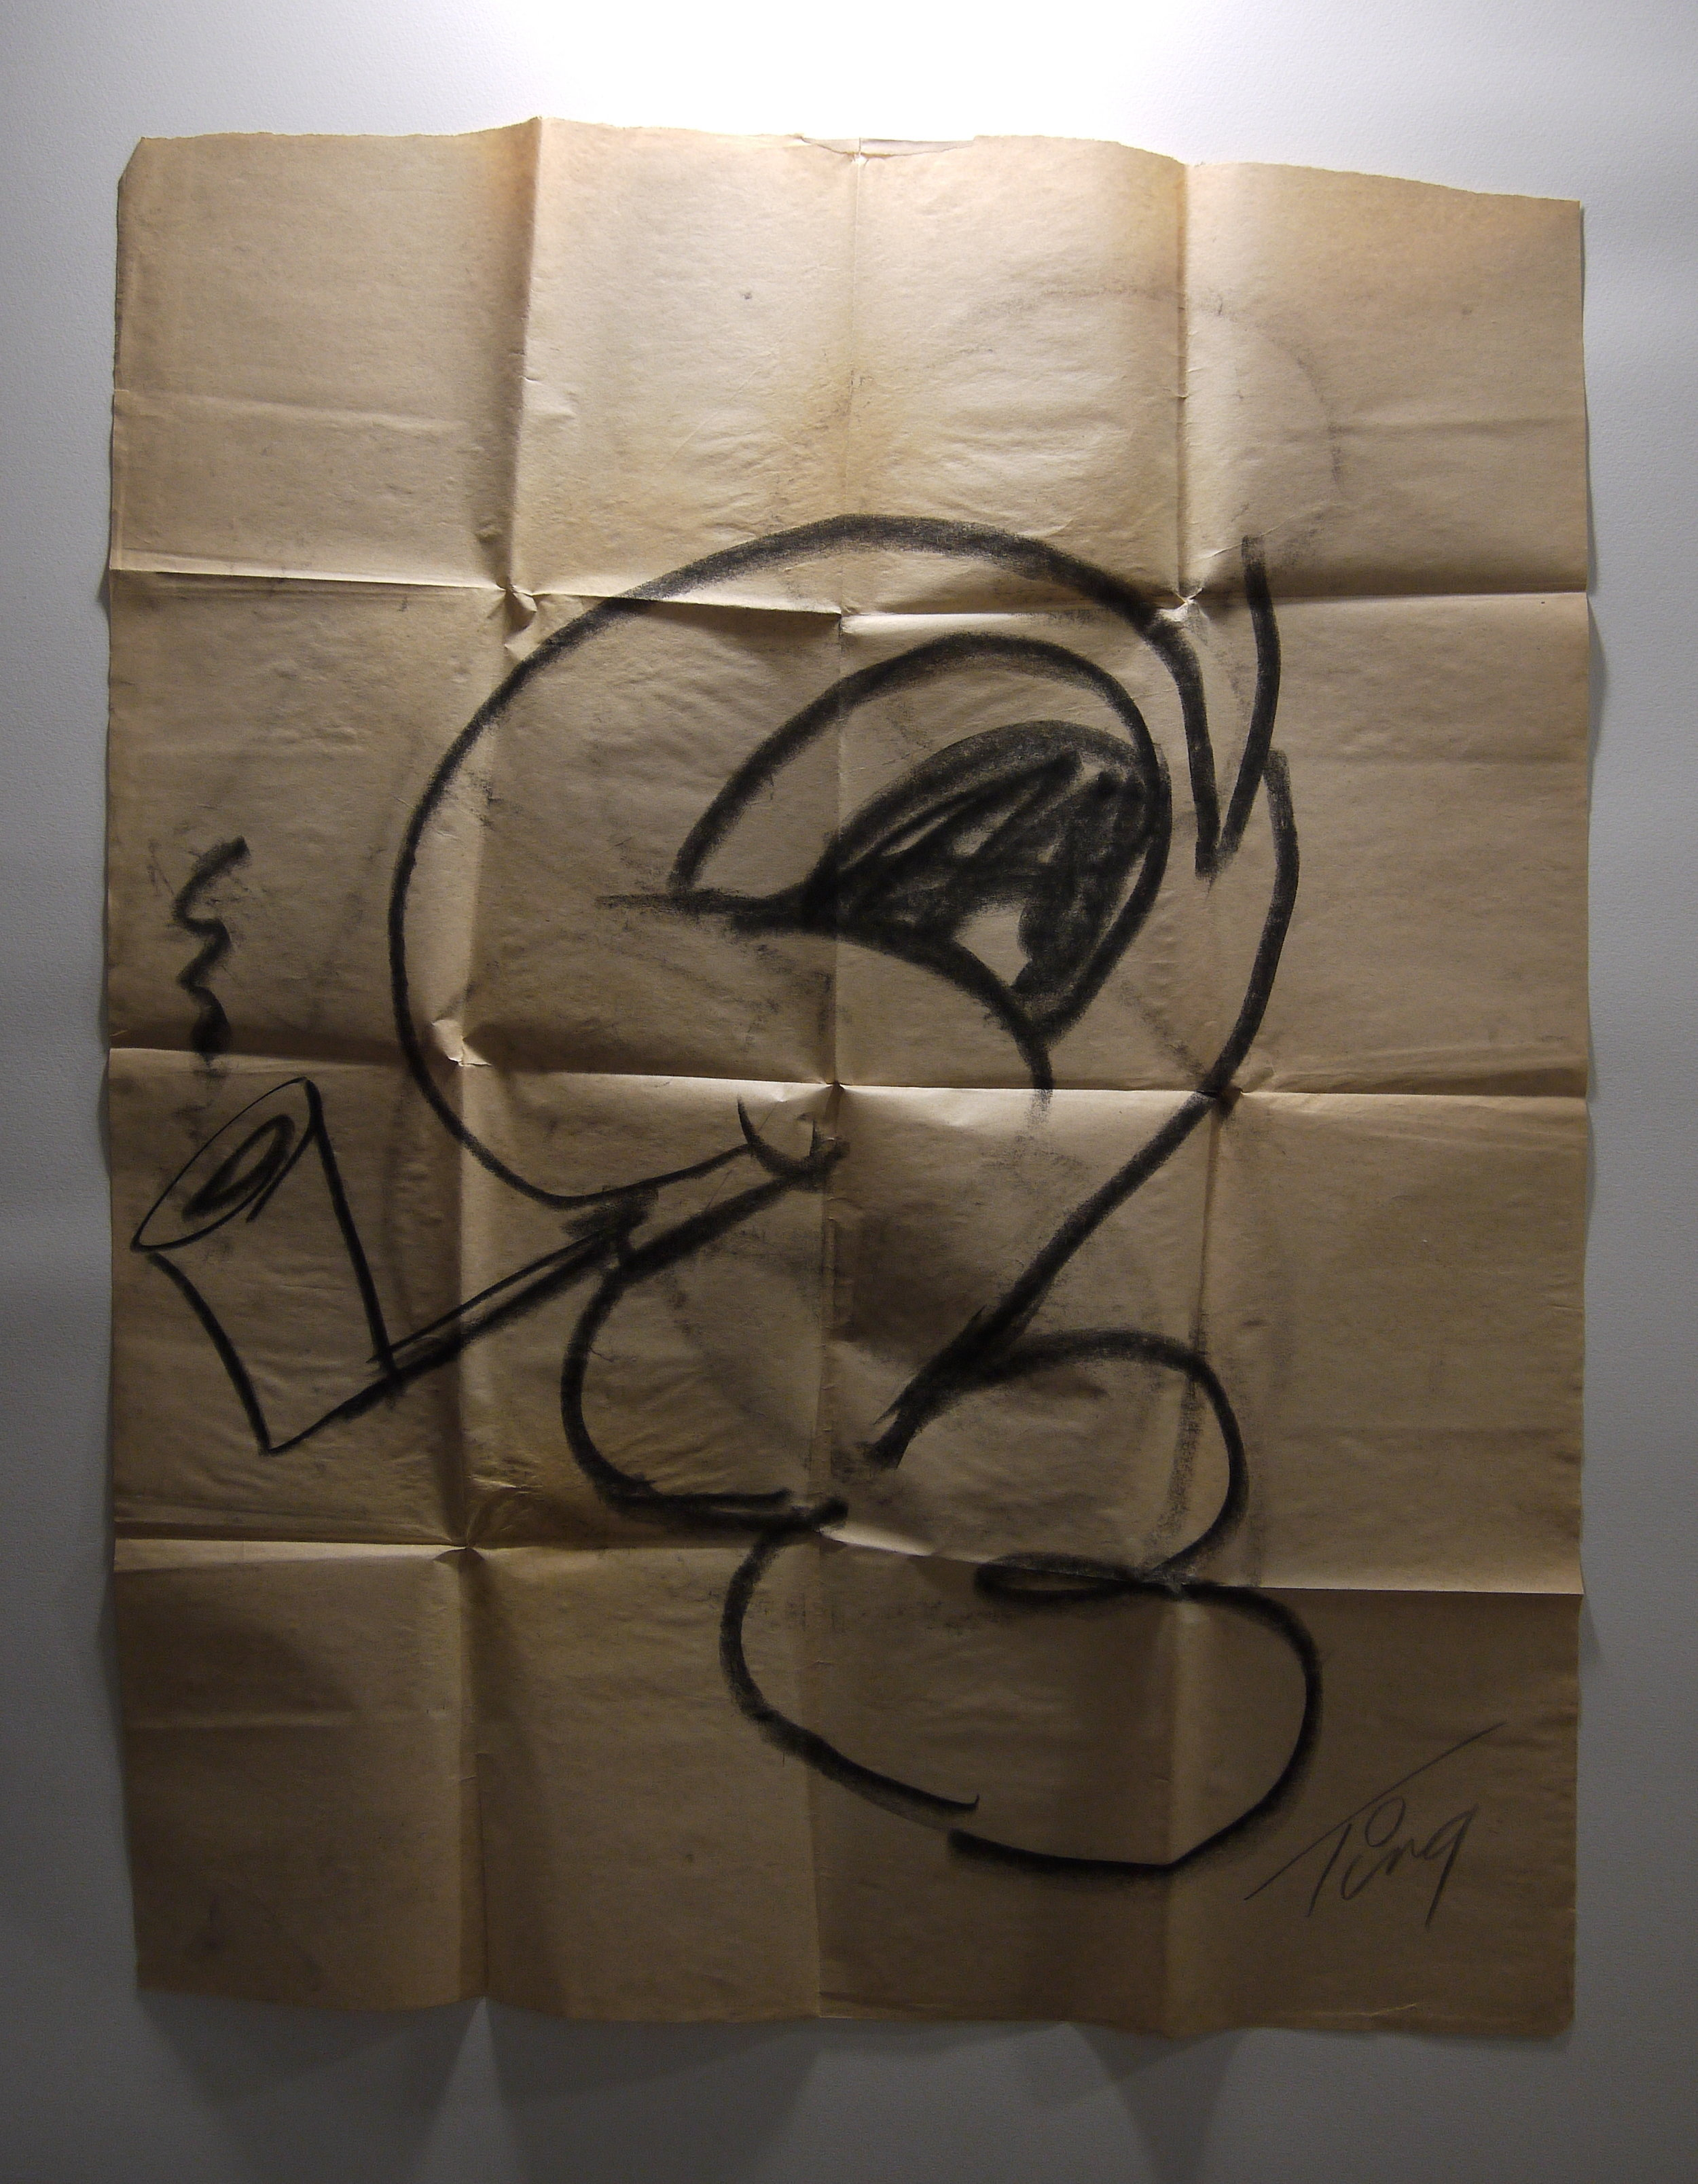 Luke Worm  sketch in raking light, showing creases.